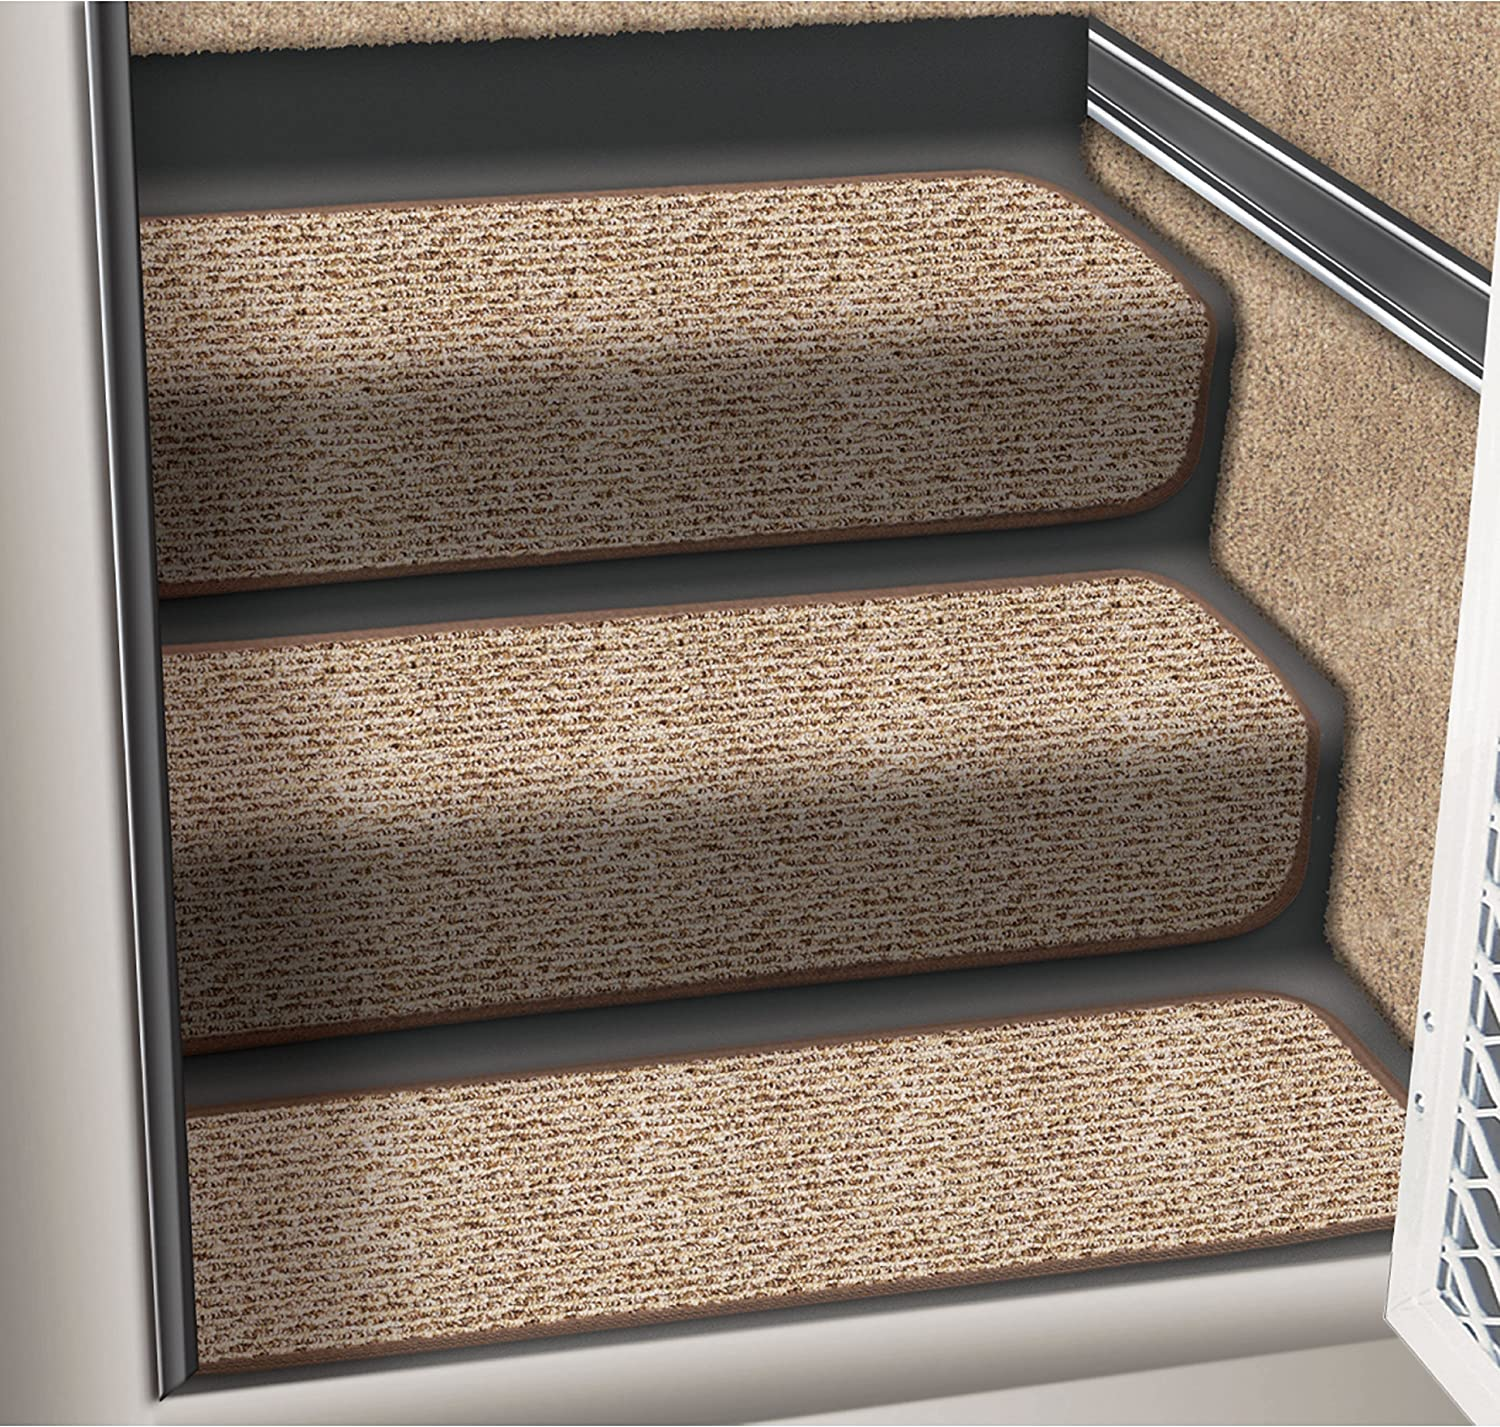 Prest-O-Fit 5-0092 Decorian Step Huggers For RV Landings Butter Pecan Brown 6 In x 23.5 In.